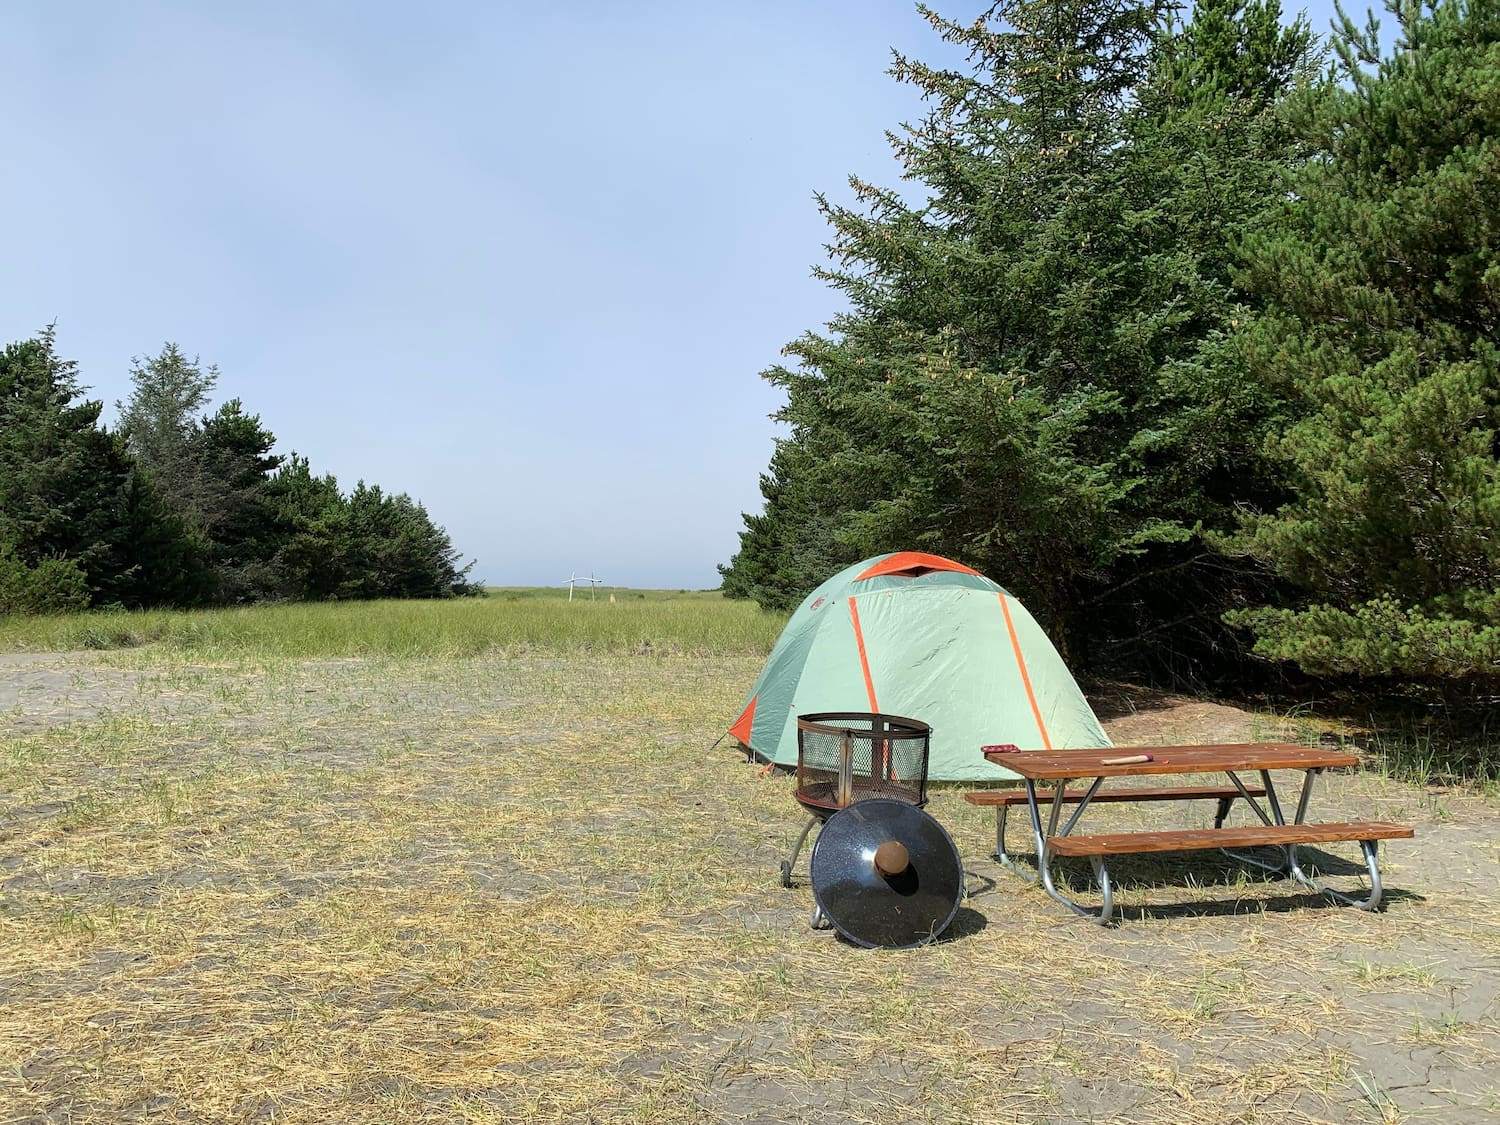 tent and picnic table in clearing of forest